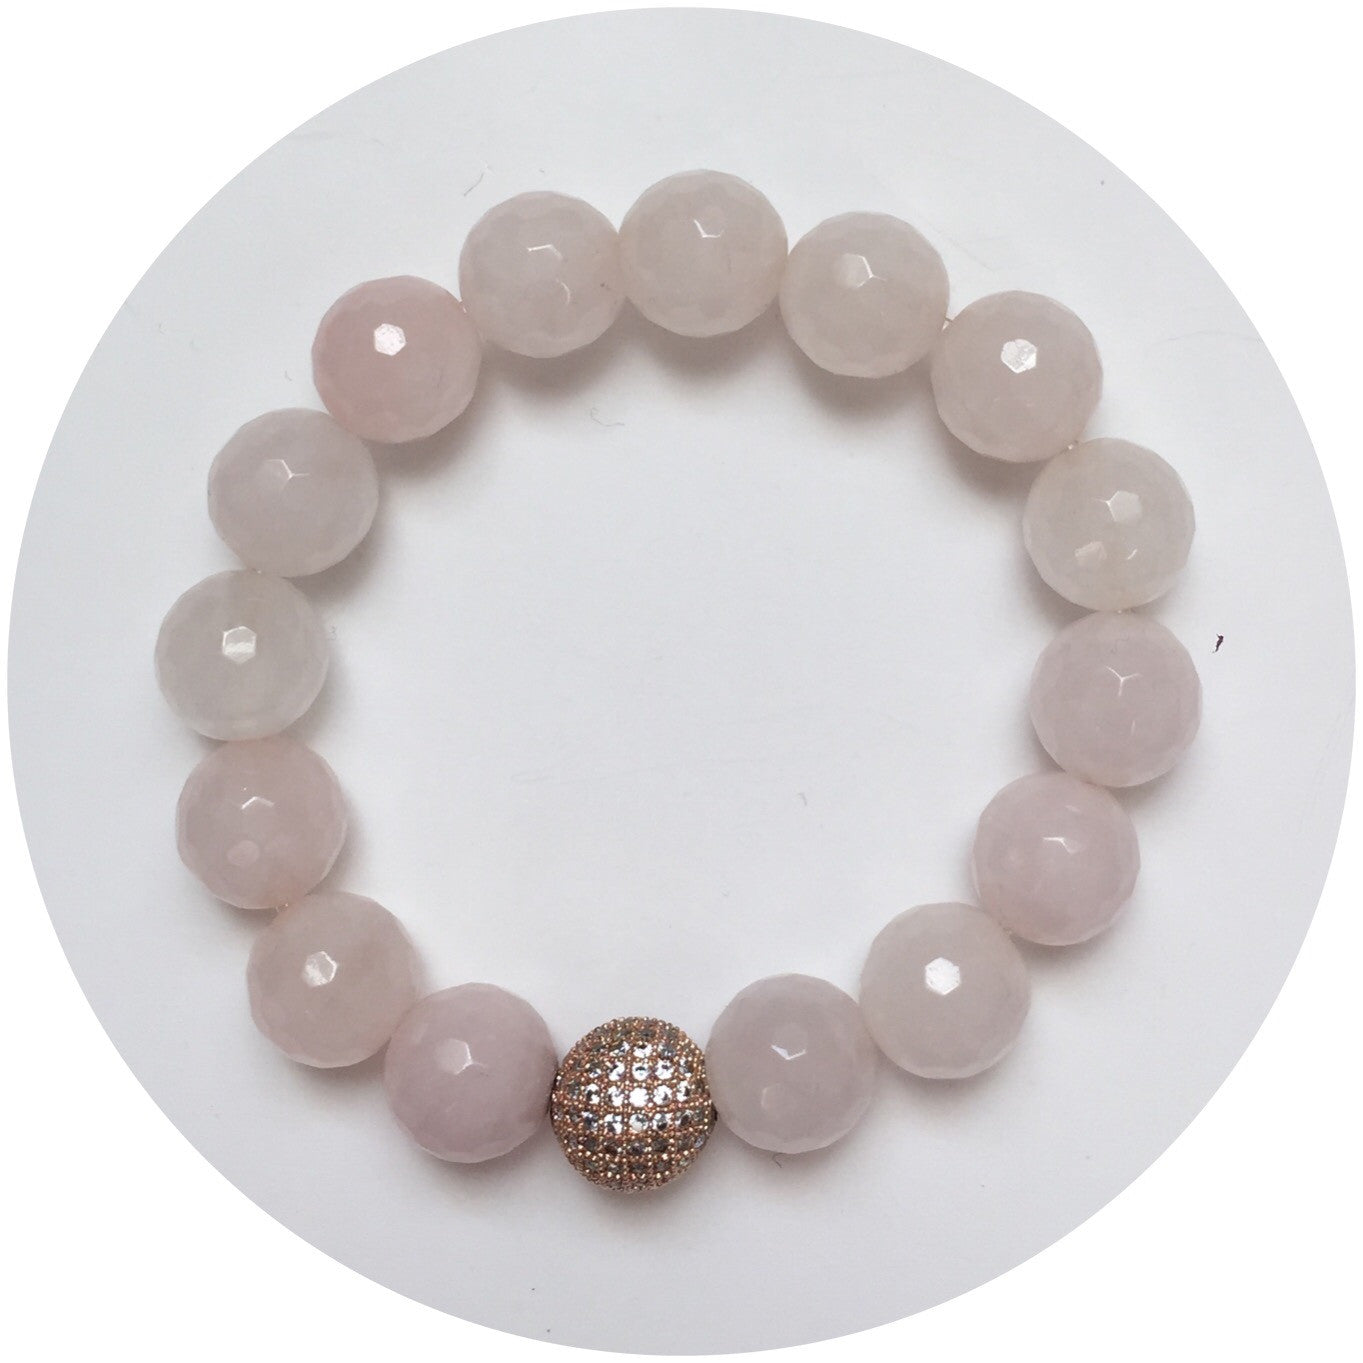 Rose Quartz with CZ Micro Pavé Rose Gold Accent - Oriana Lamarca LLC